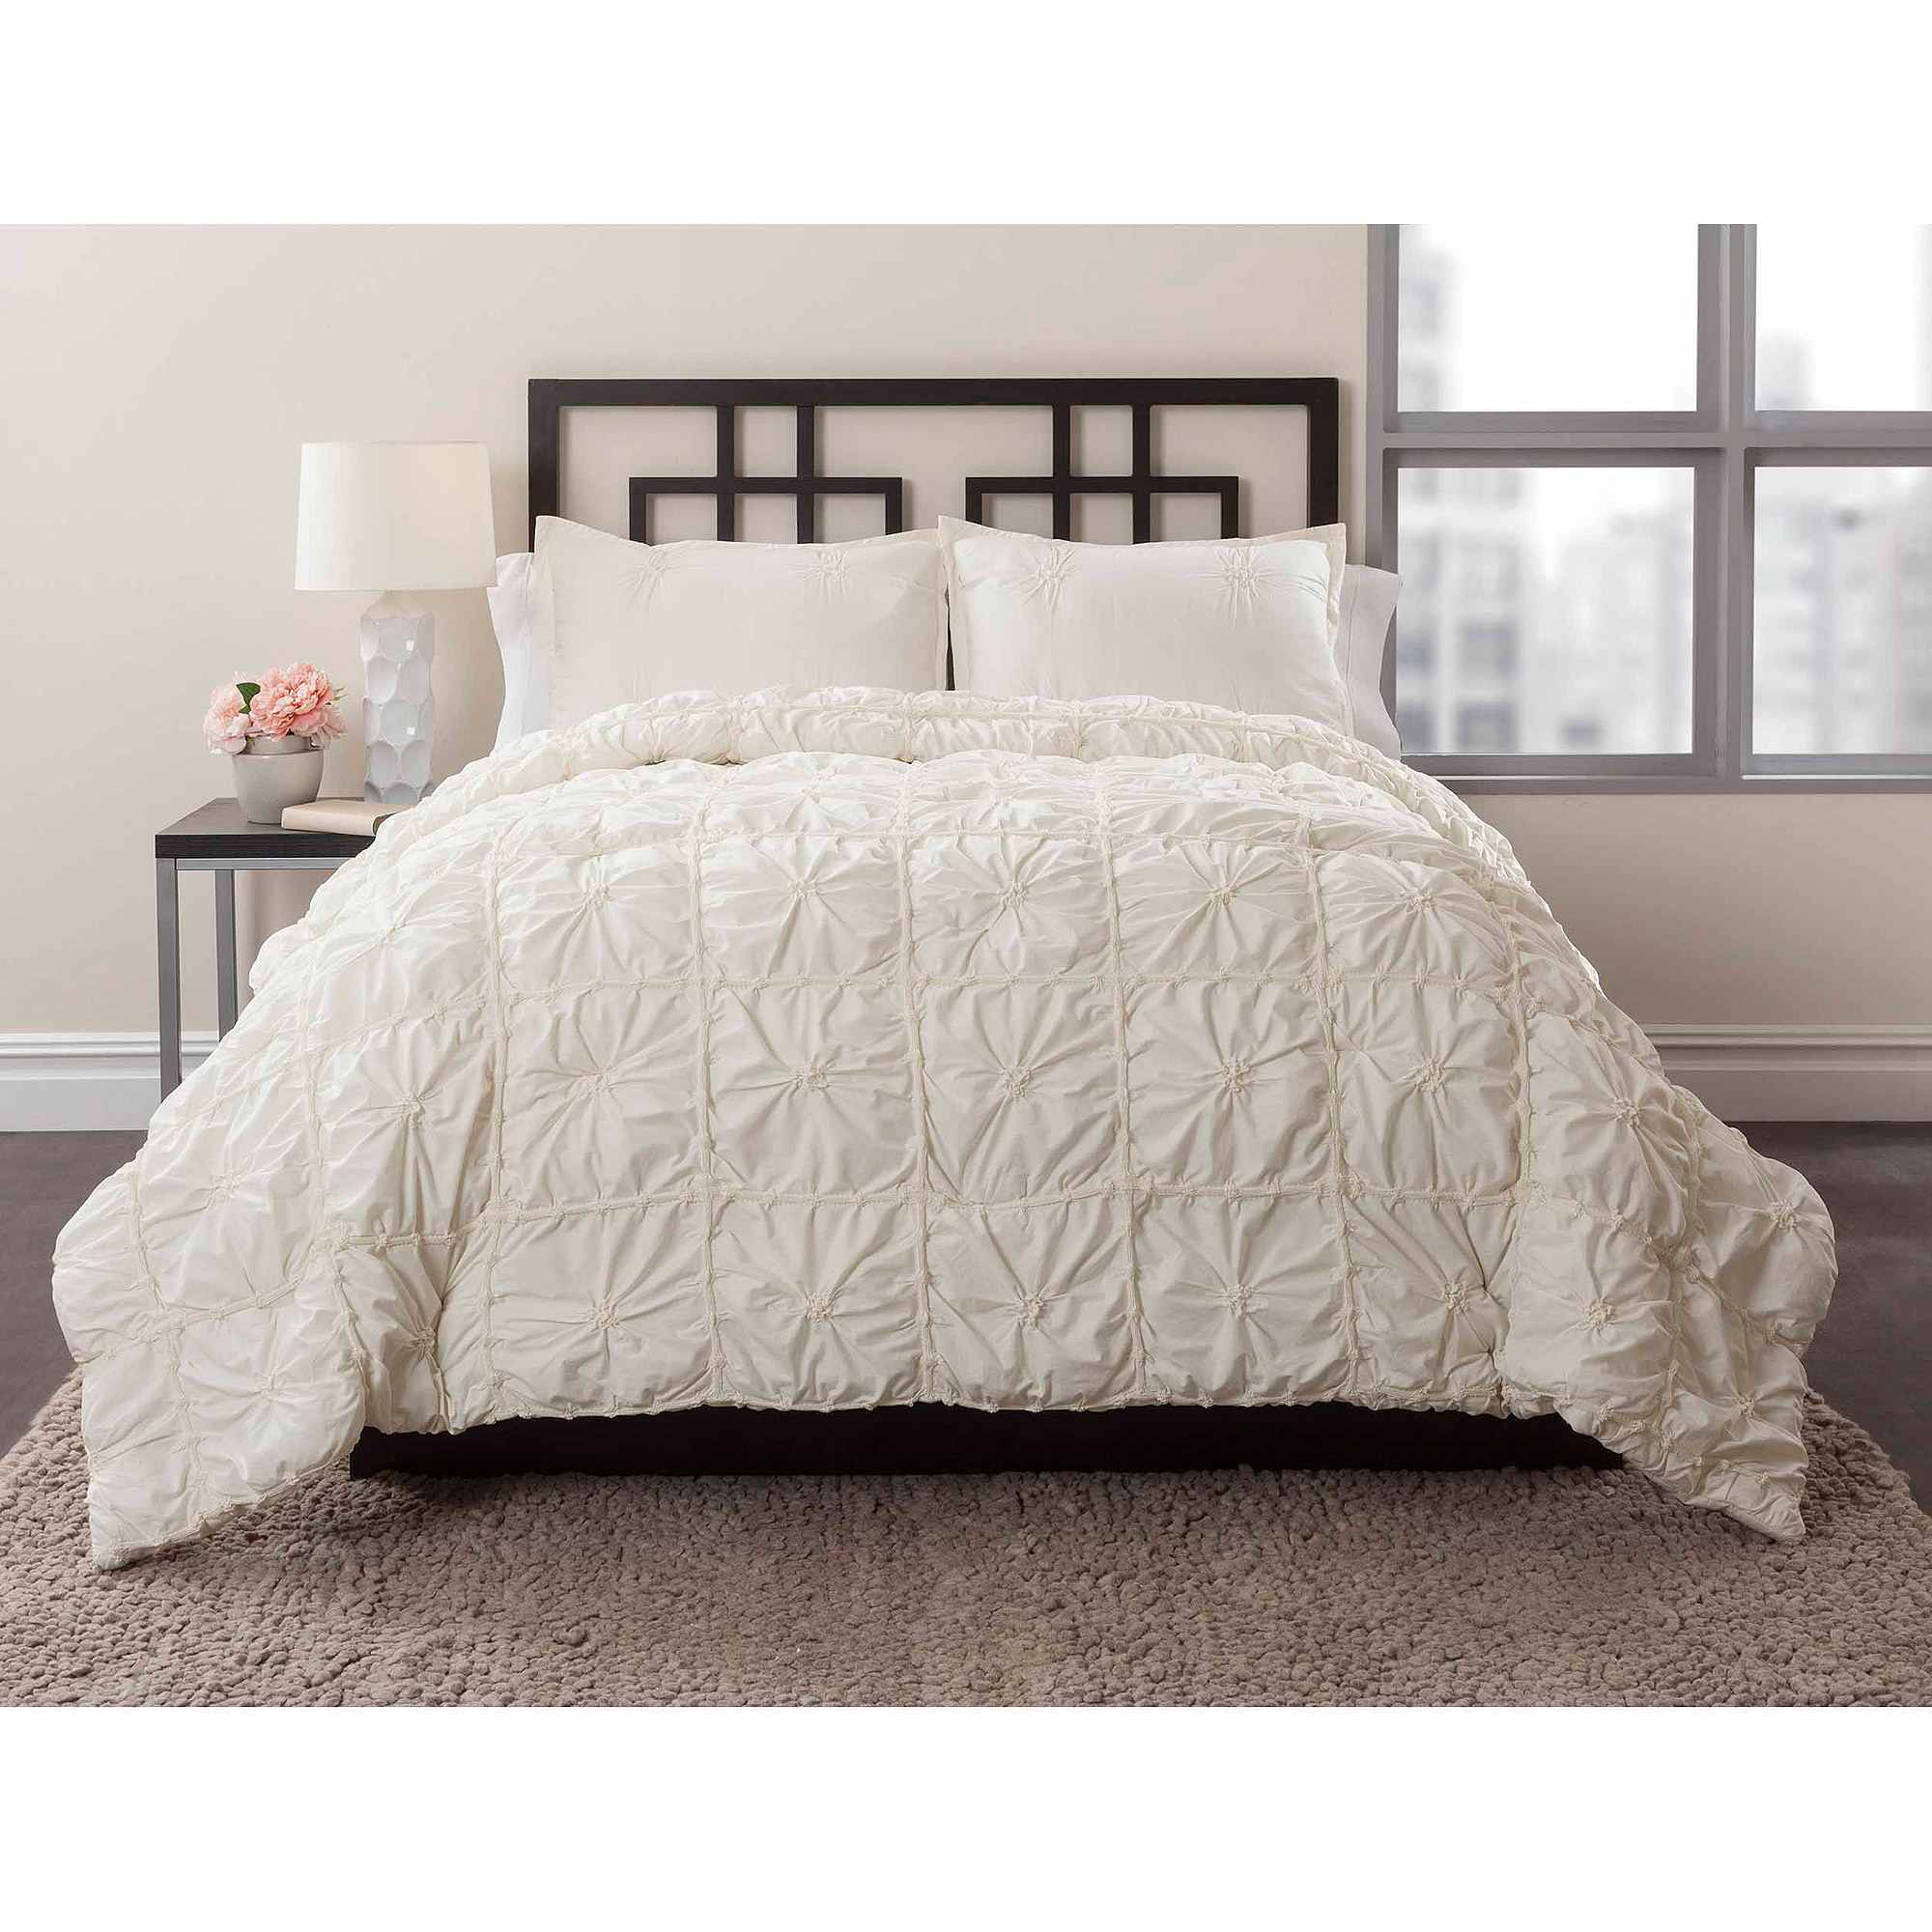 coast king west other croscill classic cal lowest new p madeline ivory price s sets piece comforter set